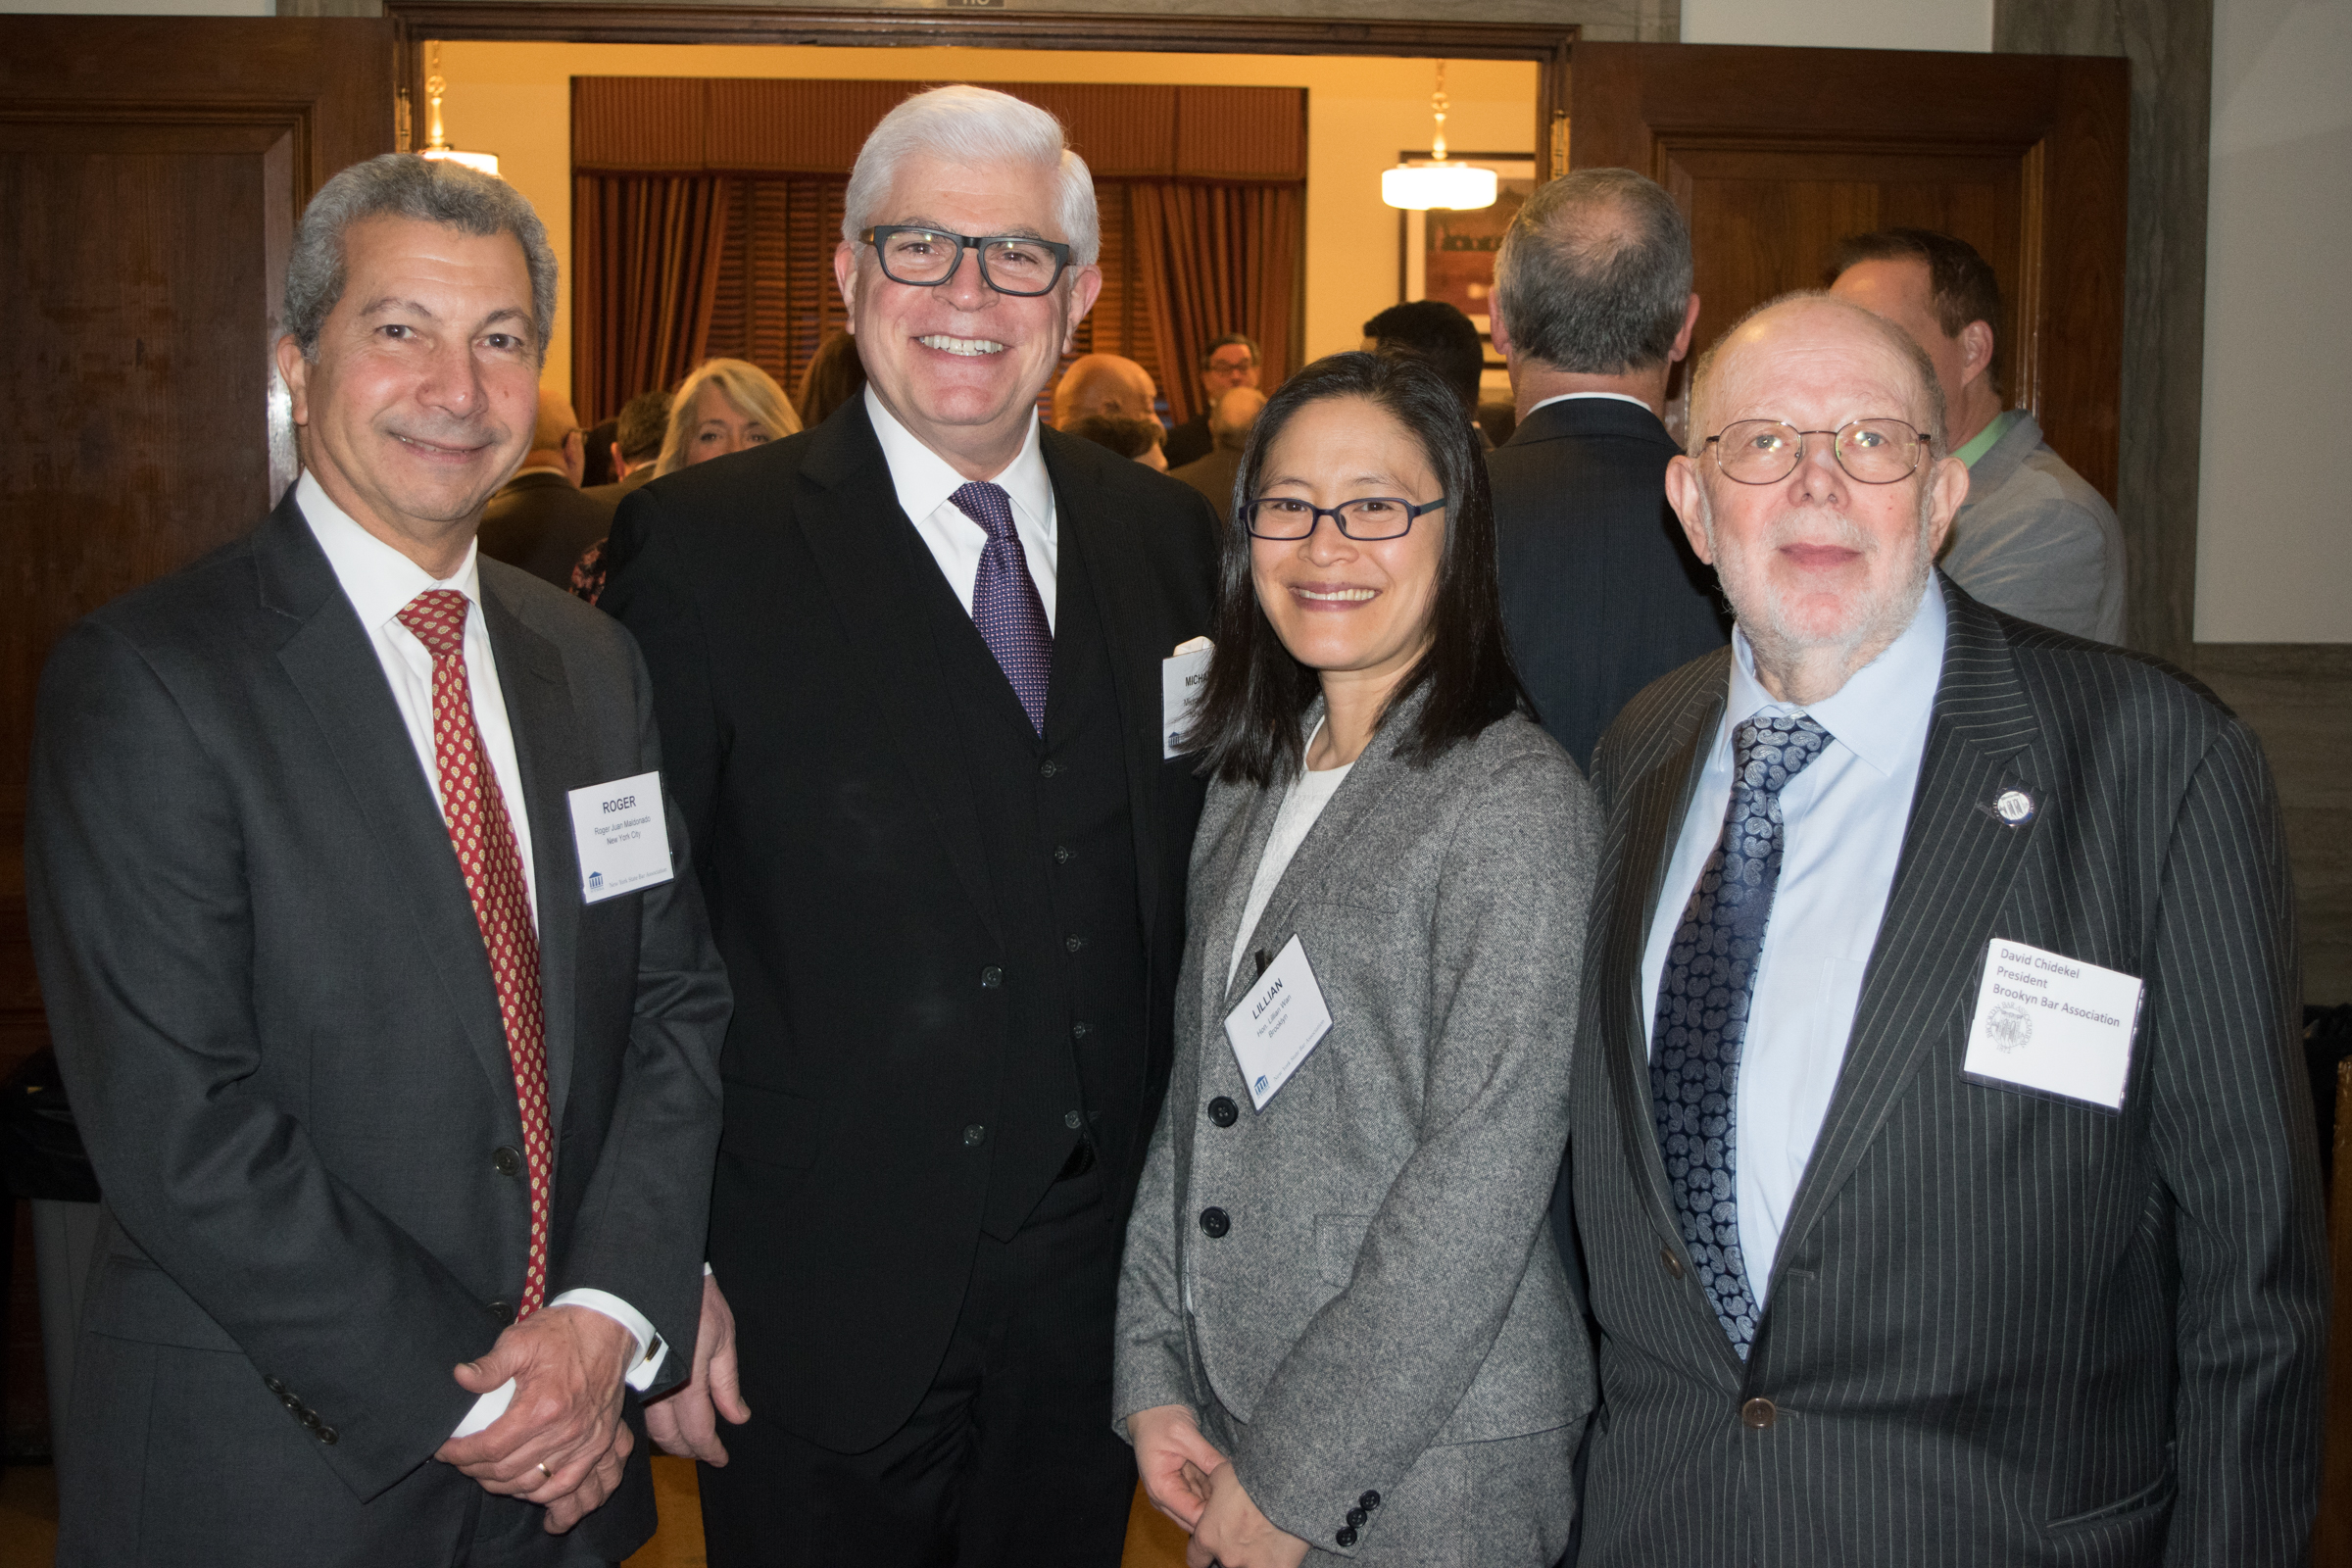 From left: Roger J. Maldonado, president of the NYC Bar Association, Michael Miller, president of the NYS Bar Association, Hon. Lillian Wan and David Chidekel, president of the Brooklyn Bar Association.